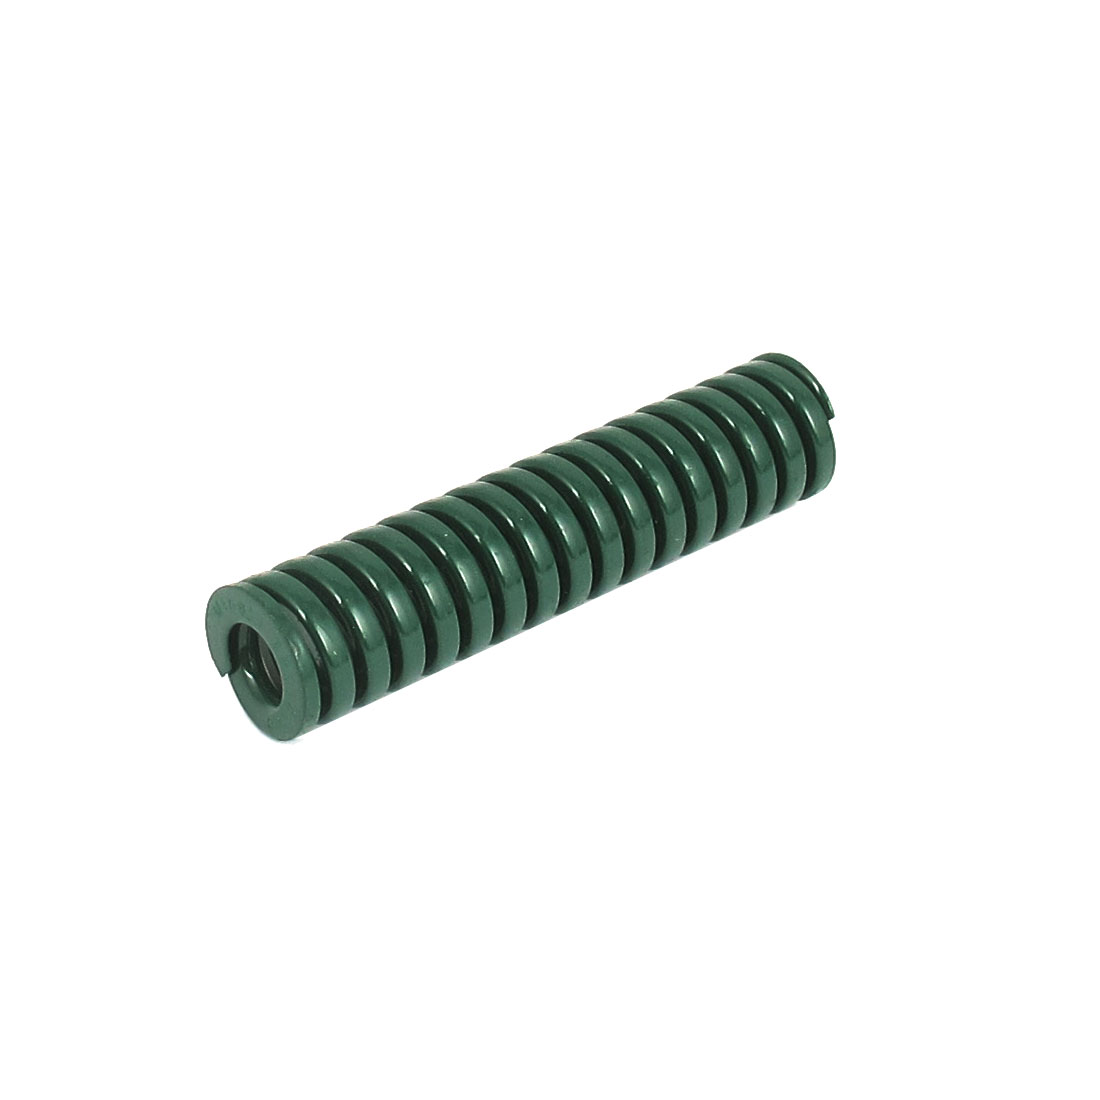 14mmx60mm Chromium Alloy Steel Heavy Load Die Spring Green